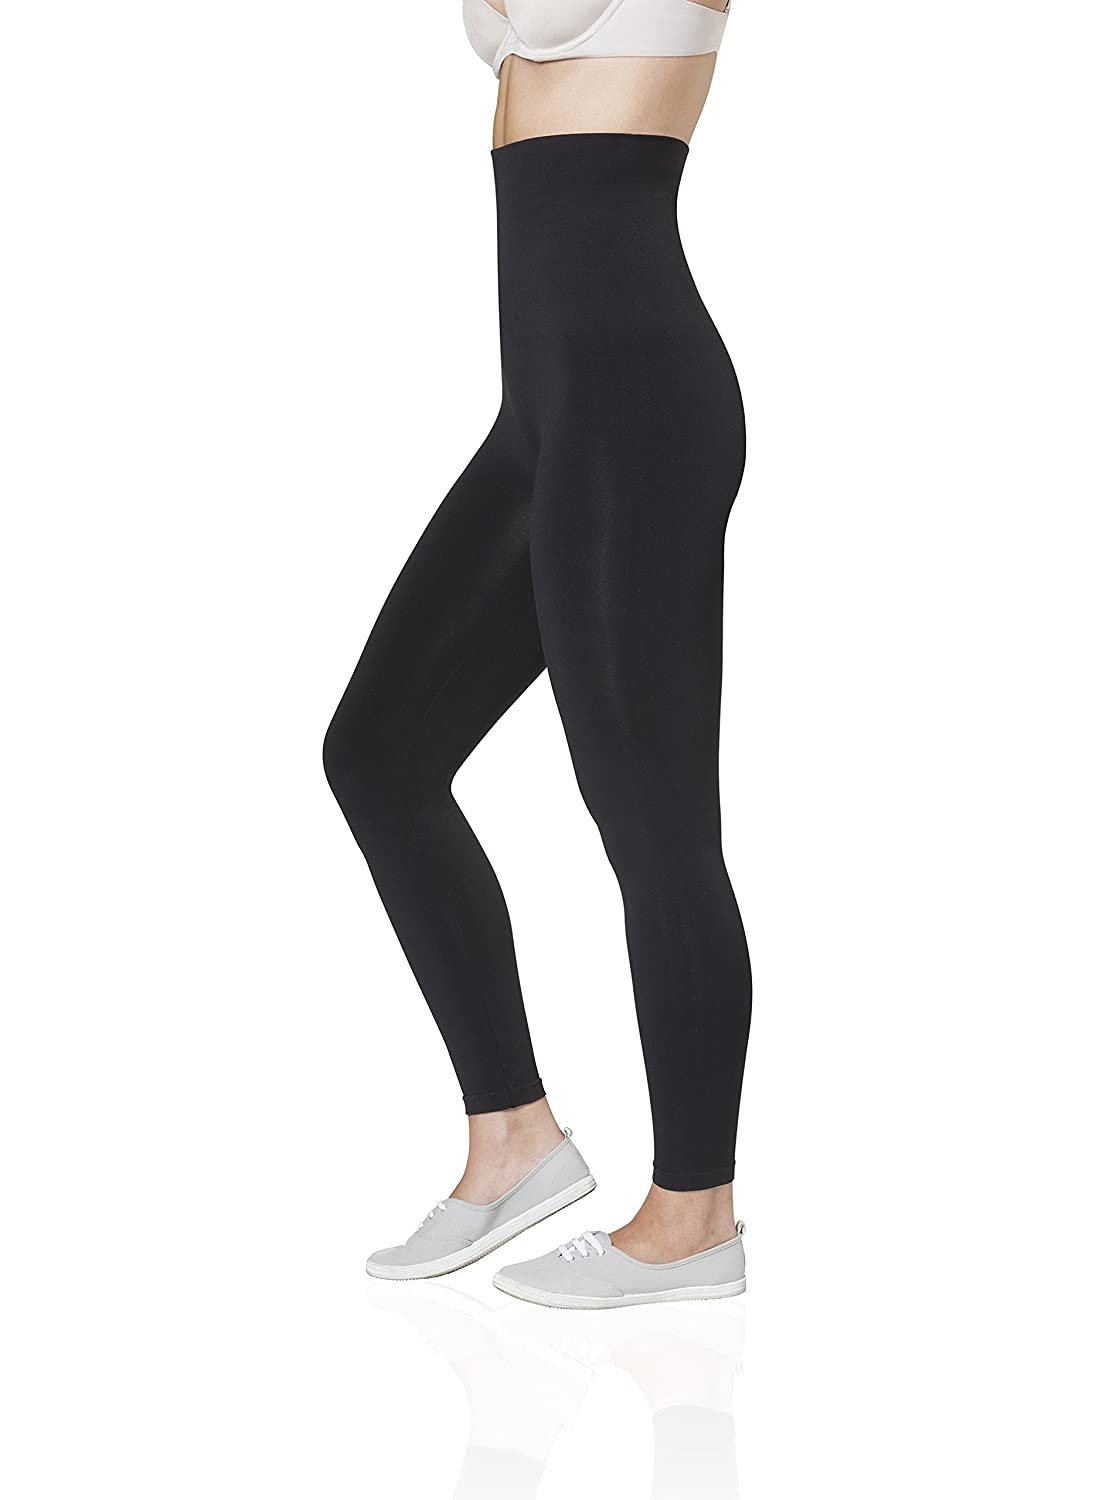 Sleex Hohe Figurformende Leggings